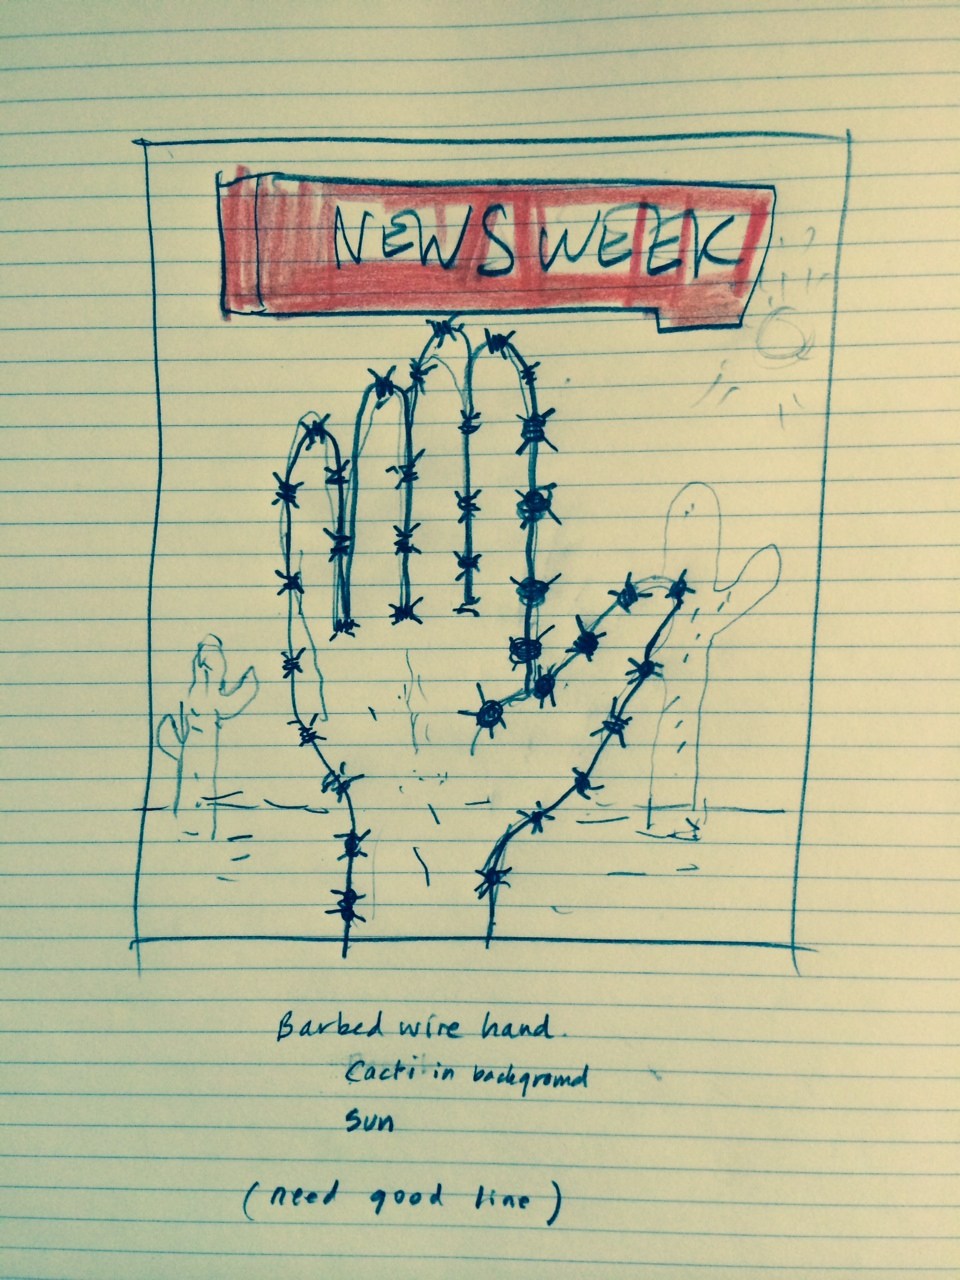 The challenge for this Newsweek cover was to depict a hand made of barbed wire. I wanted it to look believable by being gnarled, twisted and prickly.